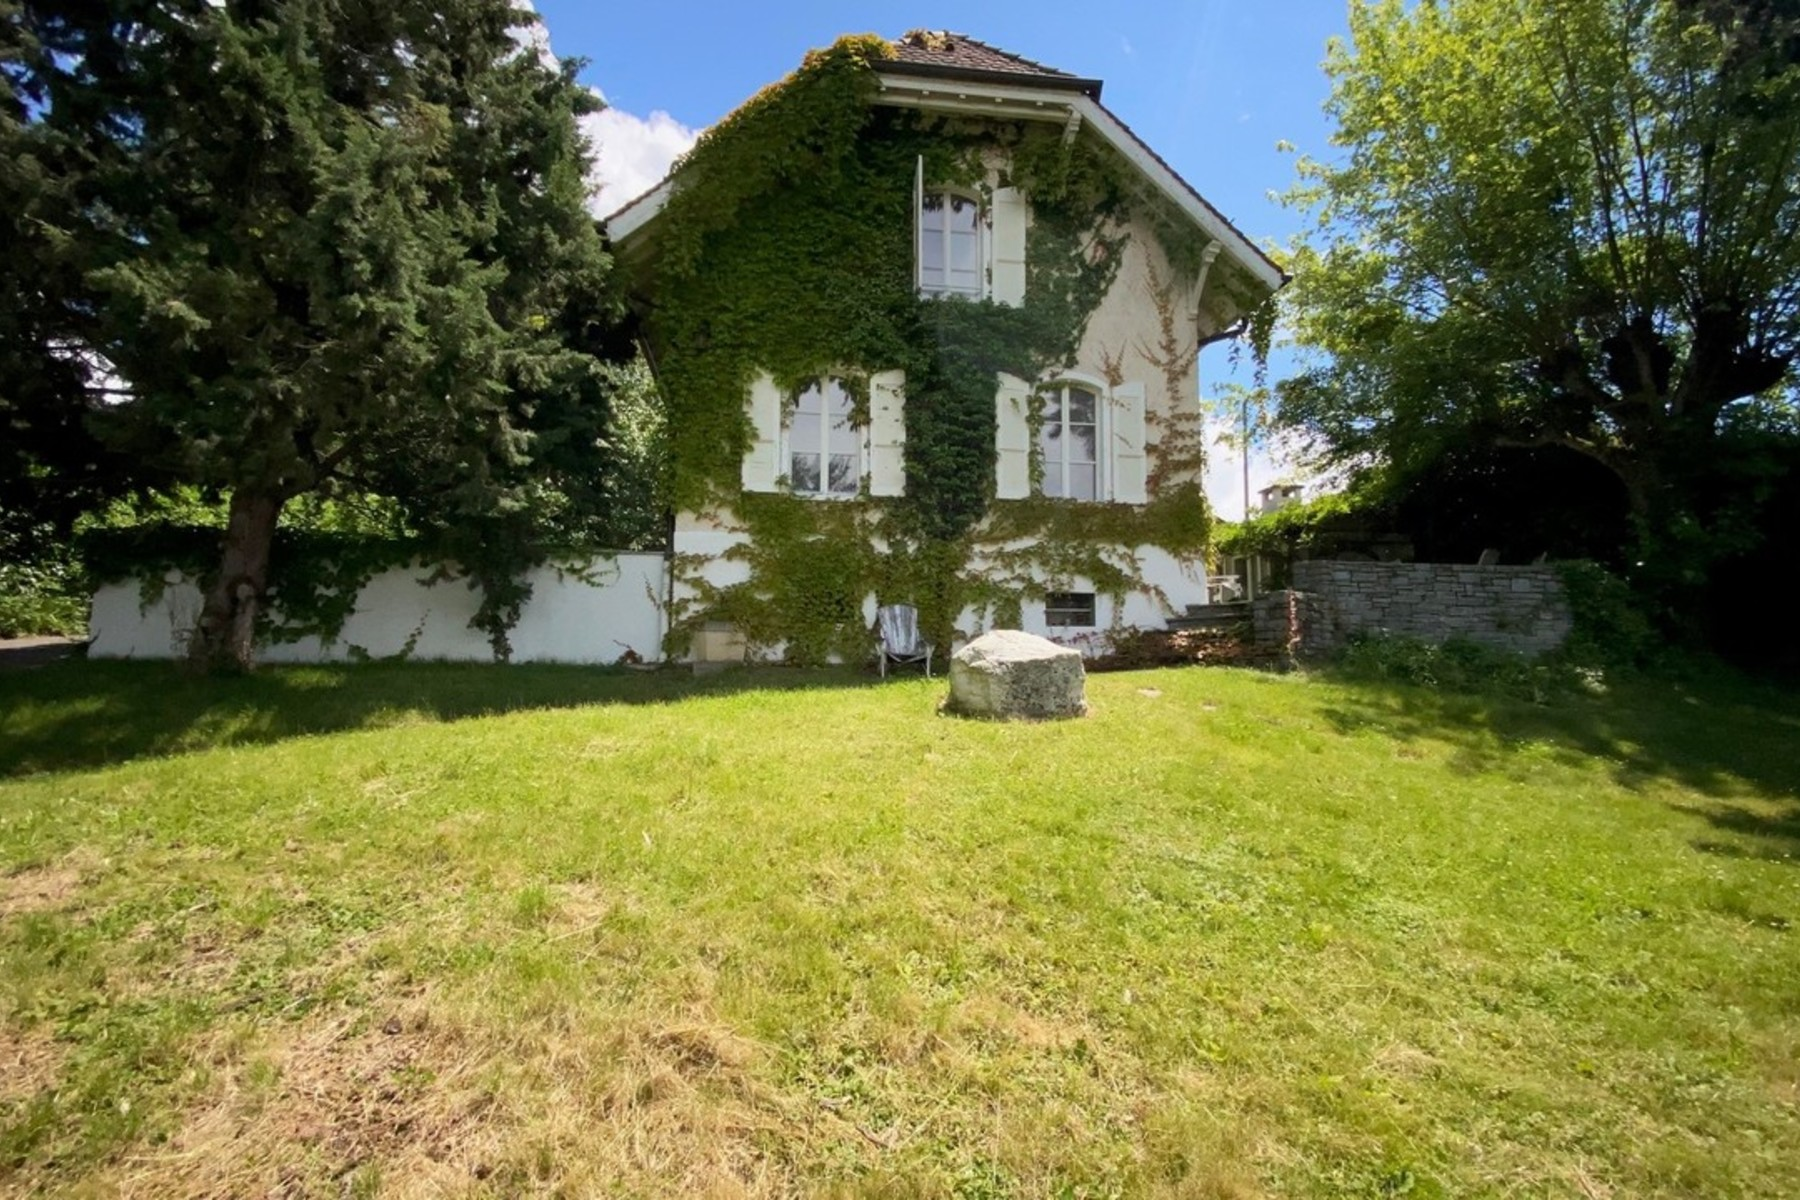 Single Family Homes のために 売買 アット Charming house with superb view of the lake - VISITS ARE POSSIBLE Anières Anieres, ジュネーブ 1247 スイス